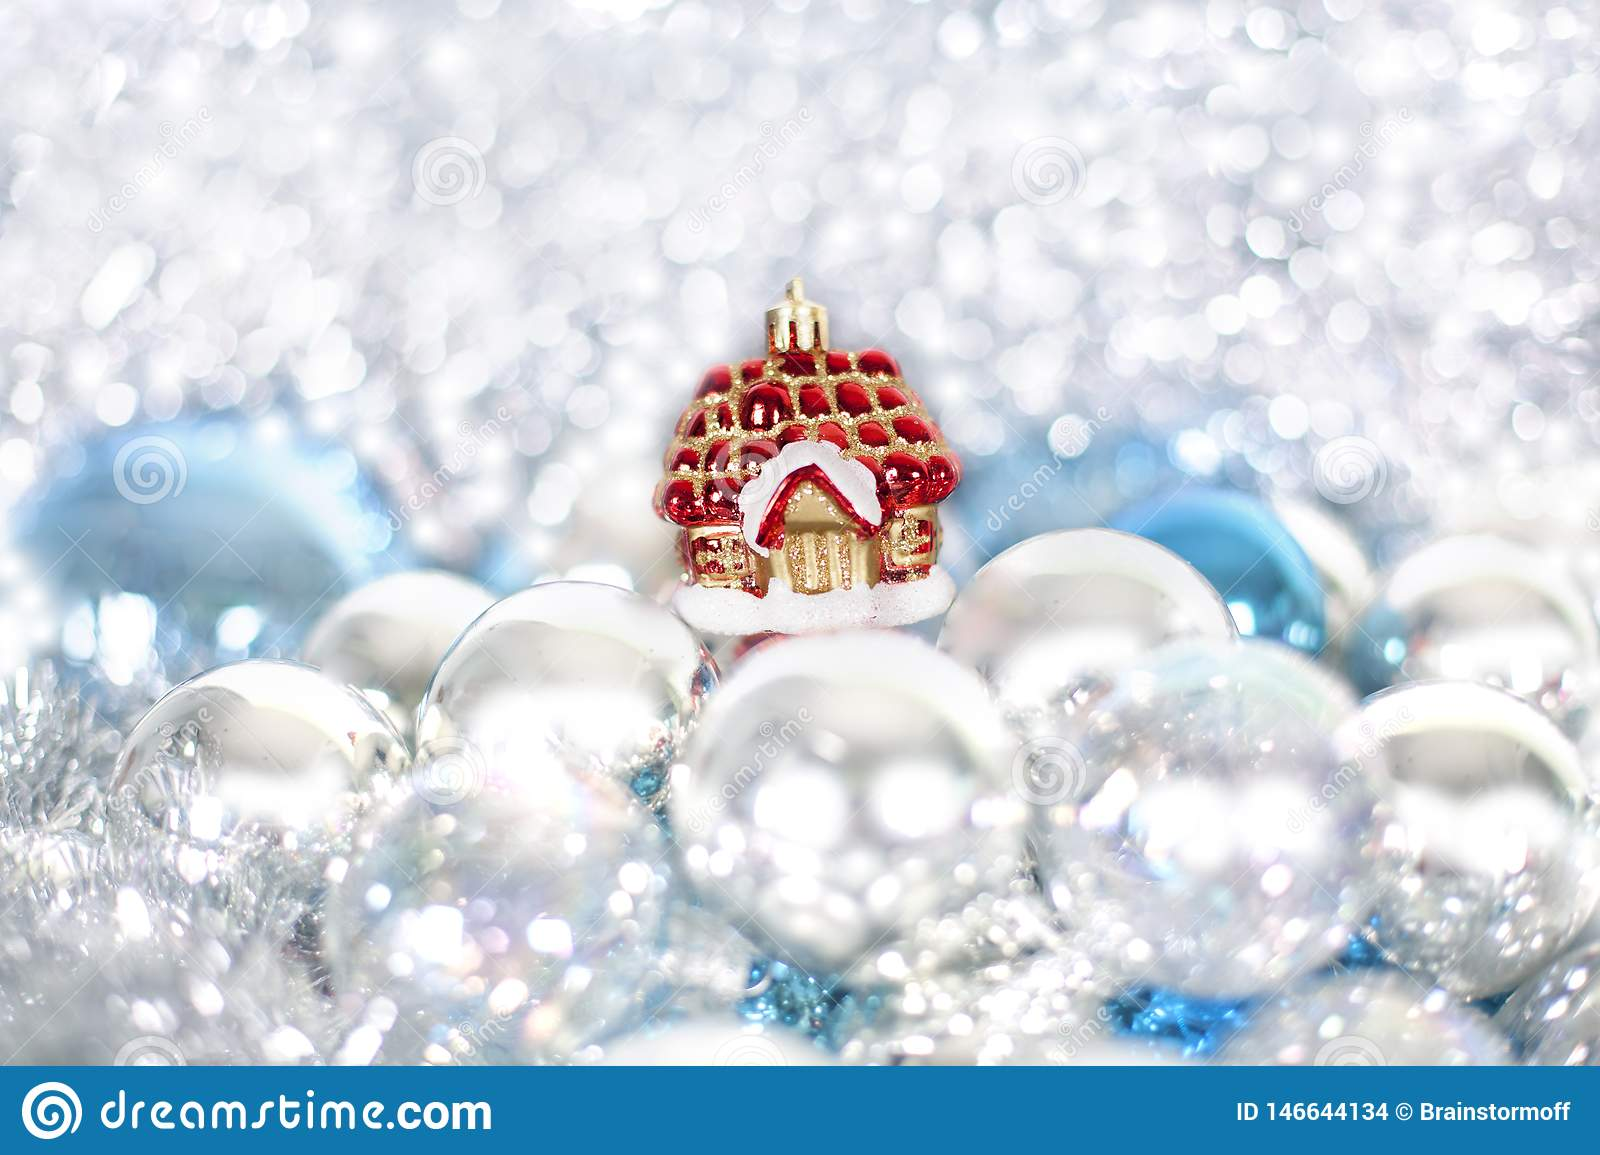 Christmas and New Year`s toy fairy tale red house in snowdrifts and snow of Christmas balls and tinsel in blue and white colors